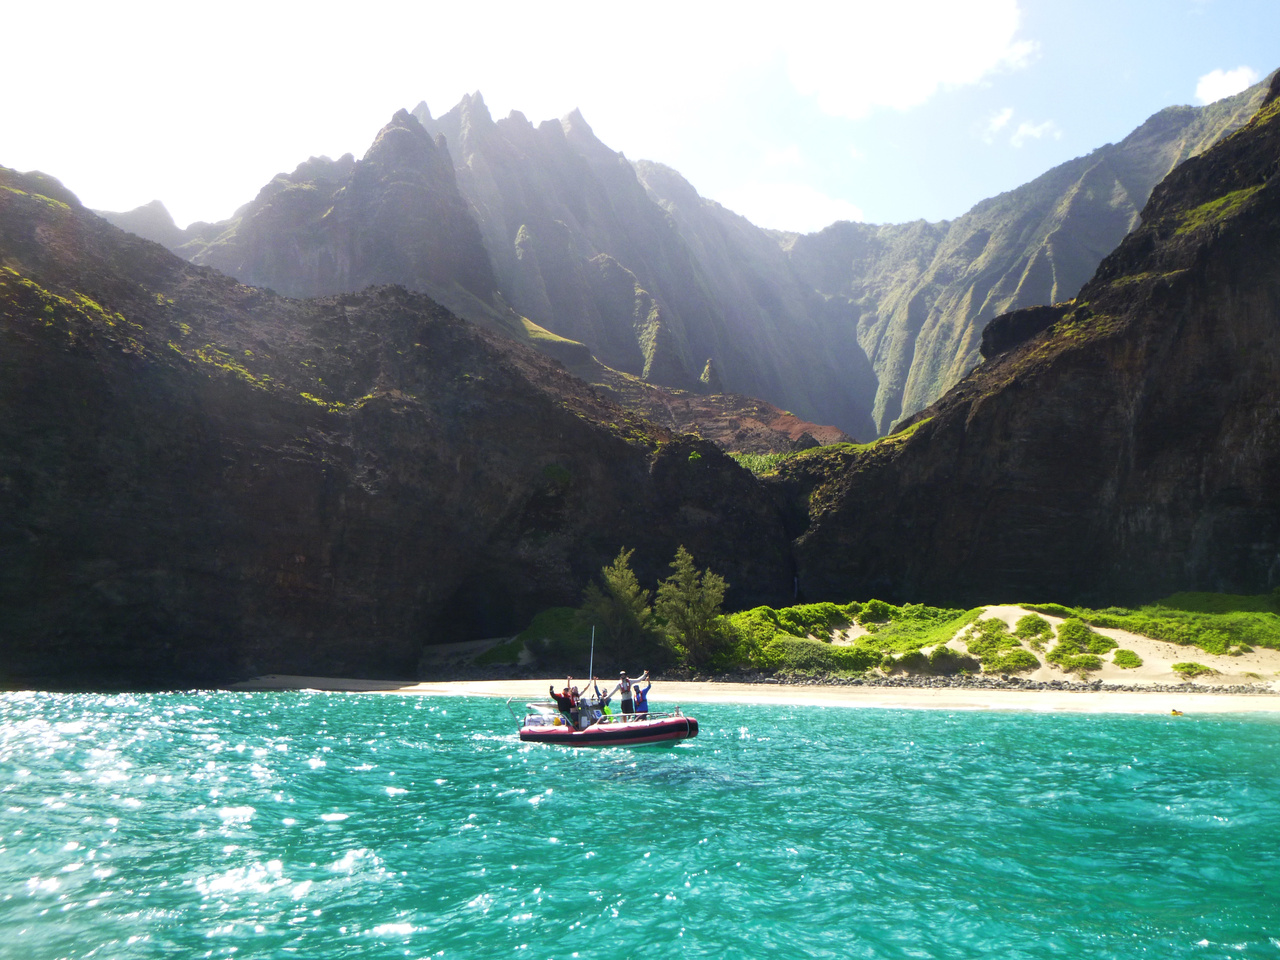 Today was a very special day on the water — we surveyed the reefs around the Nā Pali Coast. We find mostly rocks and boulders below the water's surface. Fishes enjoy the shelter of the boulders, while small coral colonies grow and claim their space on top of the boulders. The Nā Pali Coast can endure some harsh winters with major swells, but it is much calmber in the summer.  Photo: NOAA Fisheries/Mia Lamarind